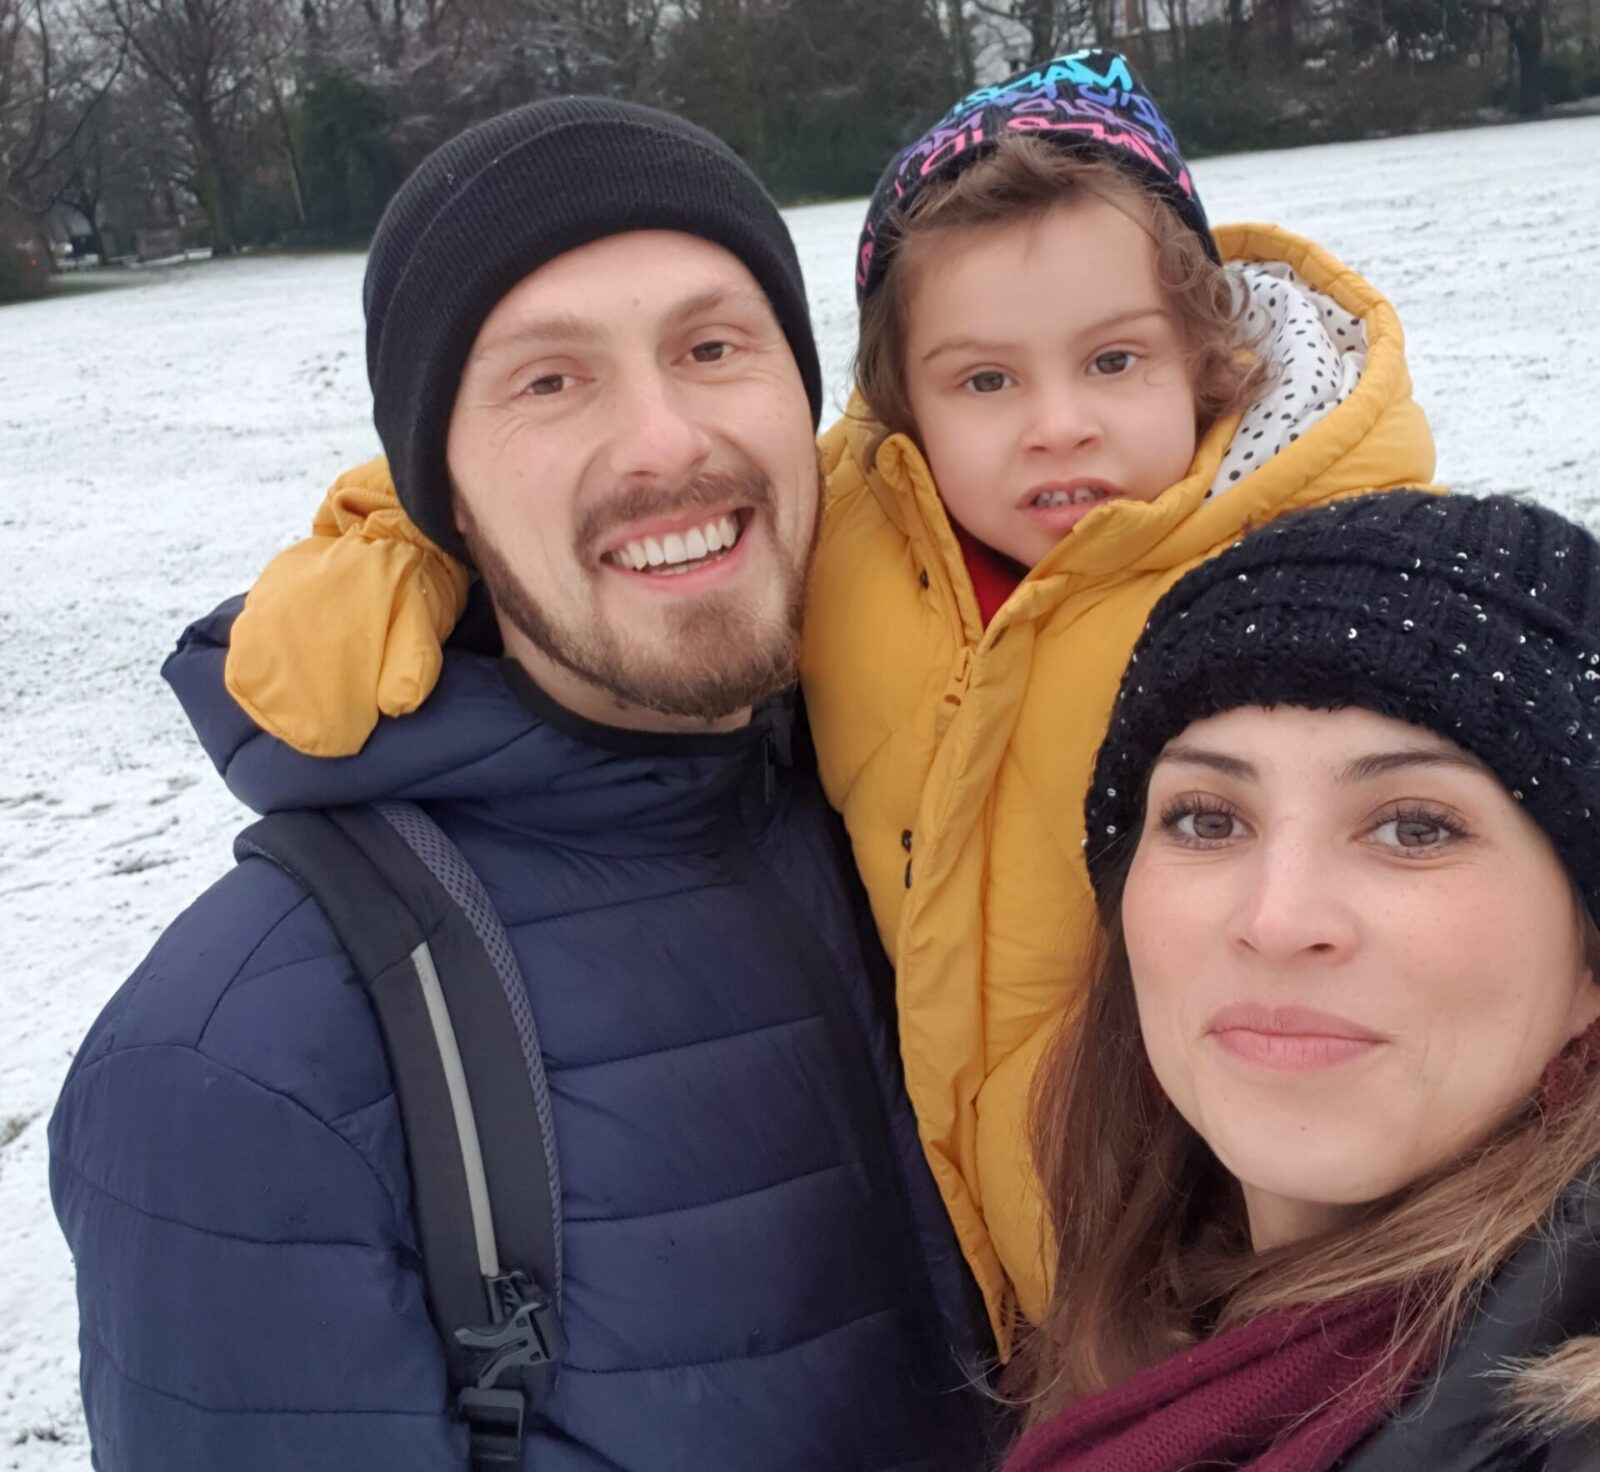 Manchester mum to take 10,000 steps everyday next month to raise funds for Brain Tumour Research, The Manc